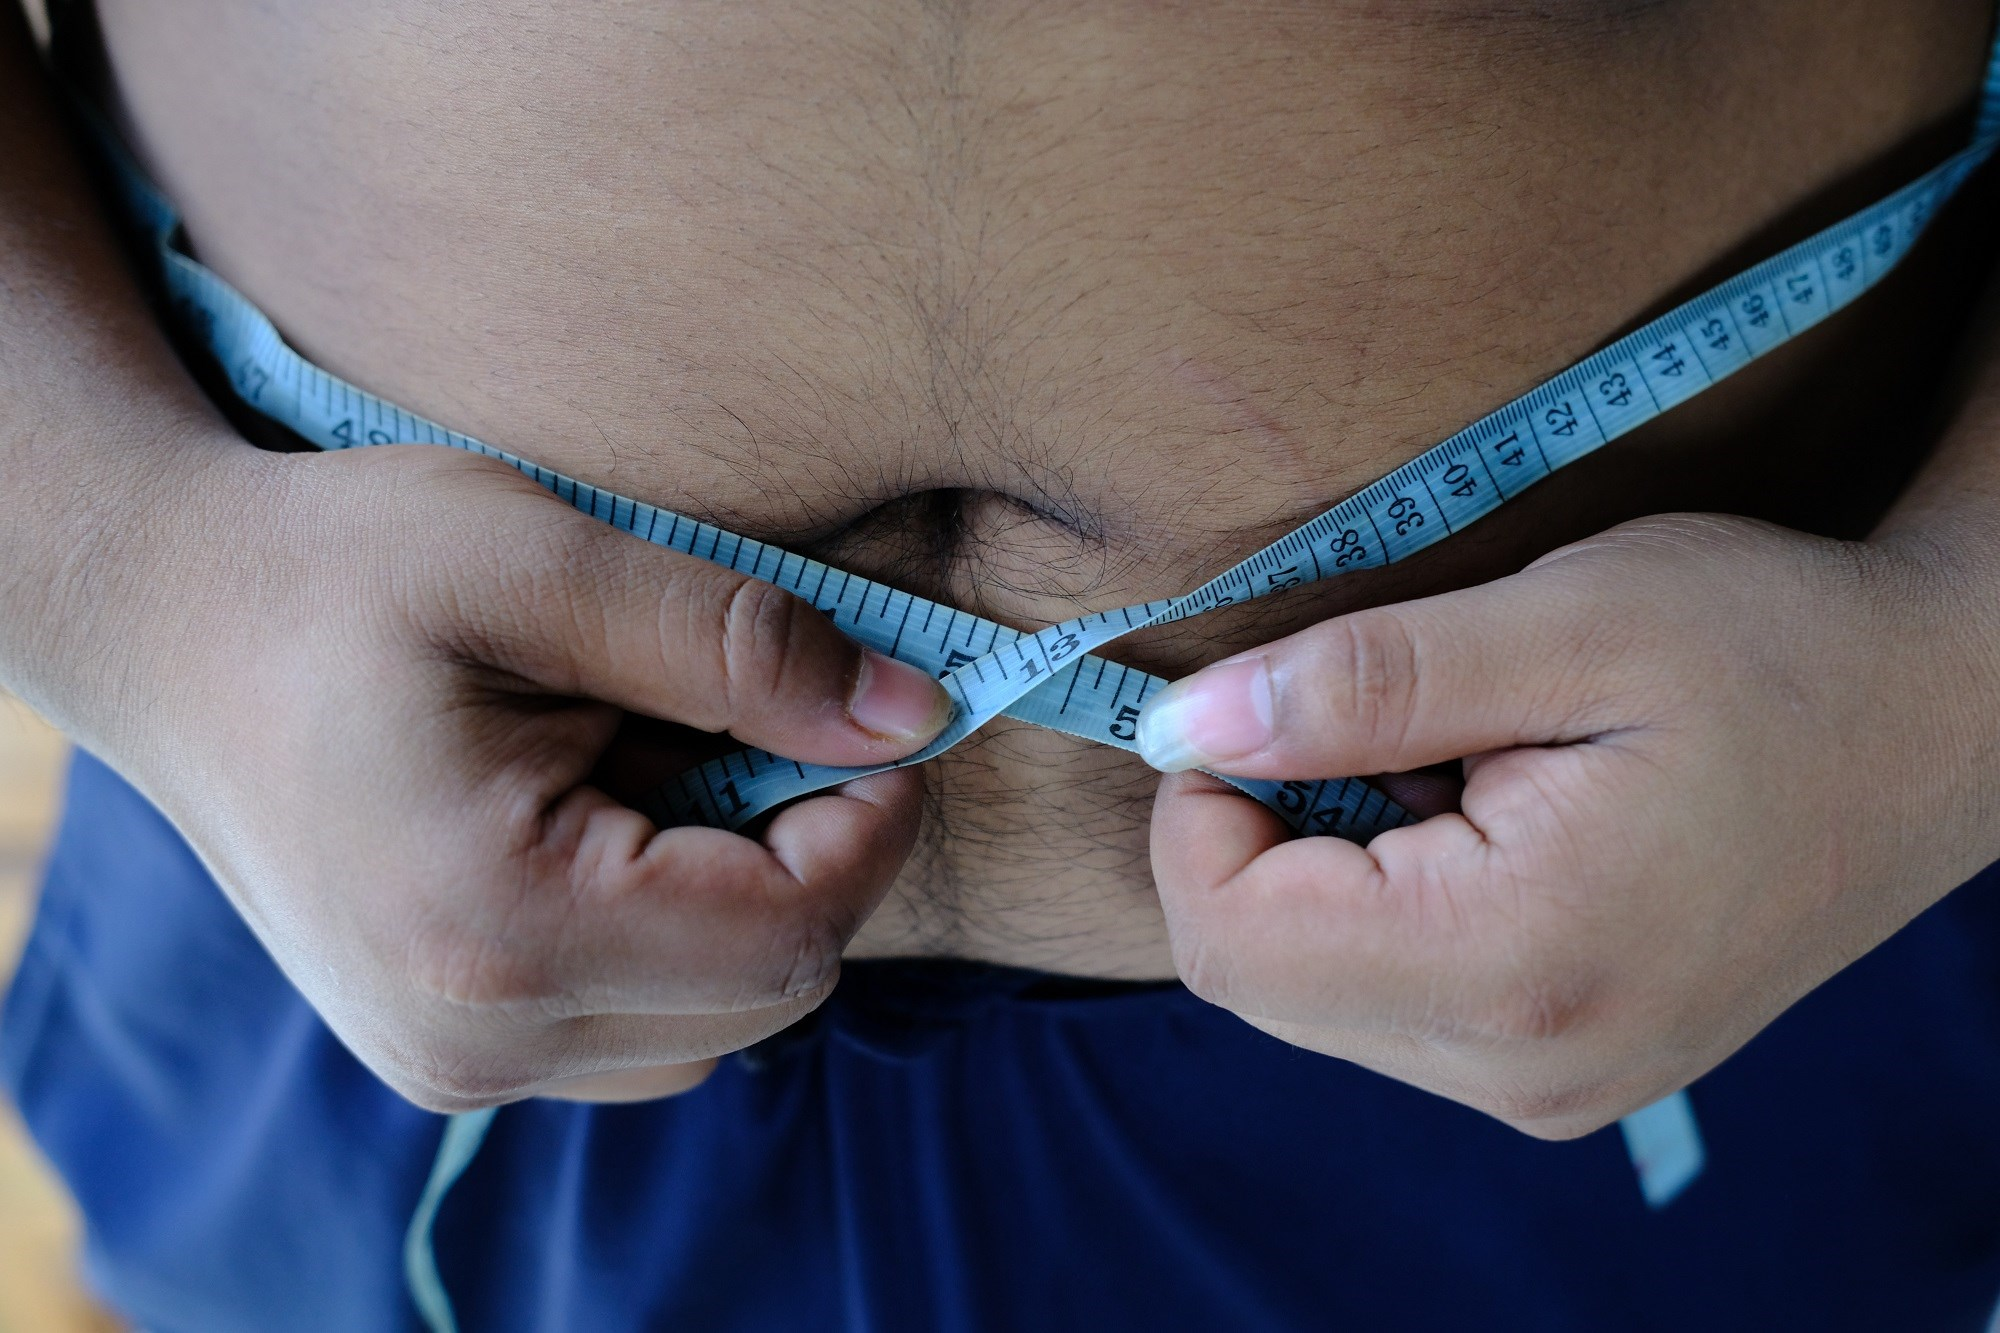 Lorcaserin Facilitates Weight Loss in Overweight, Obese